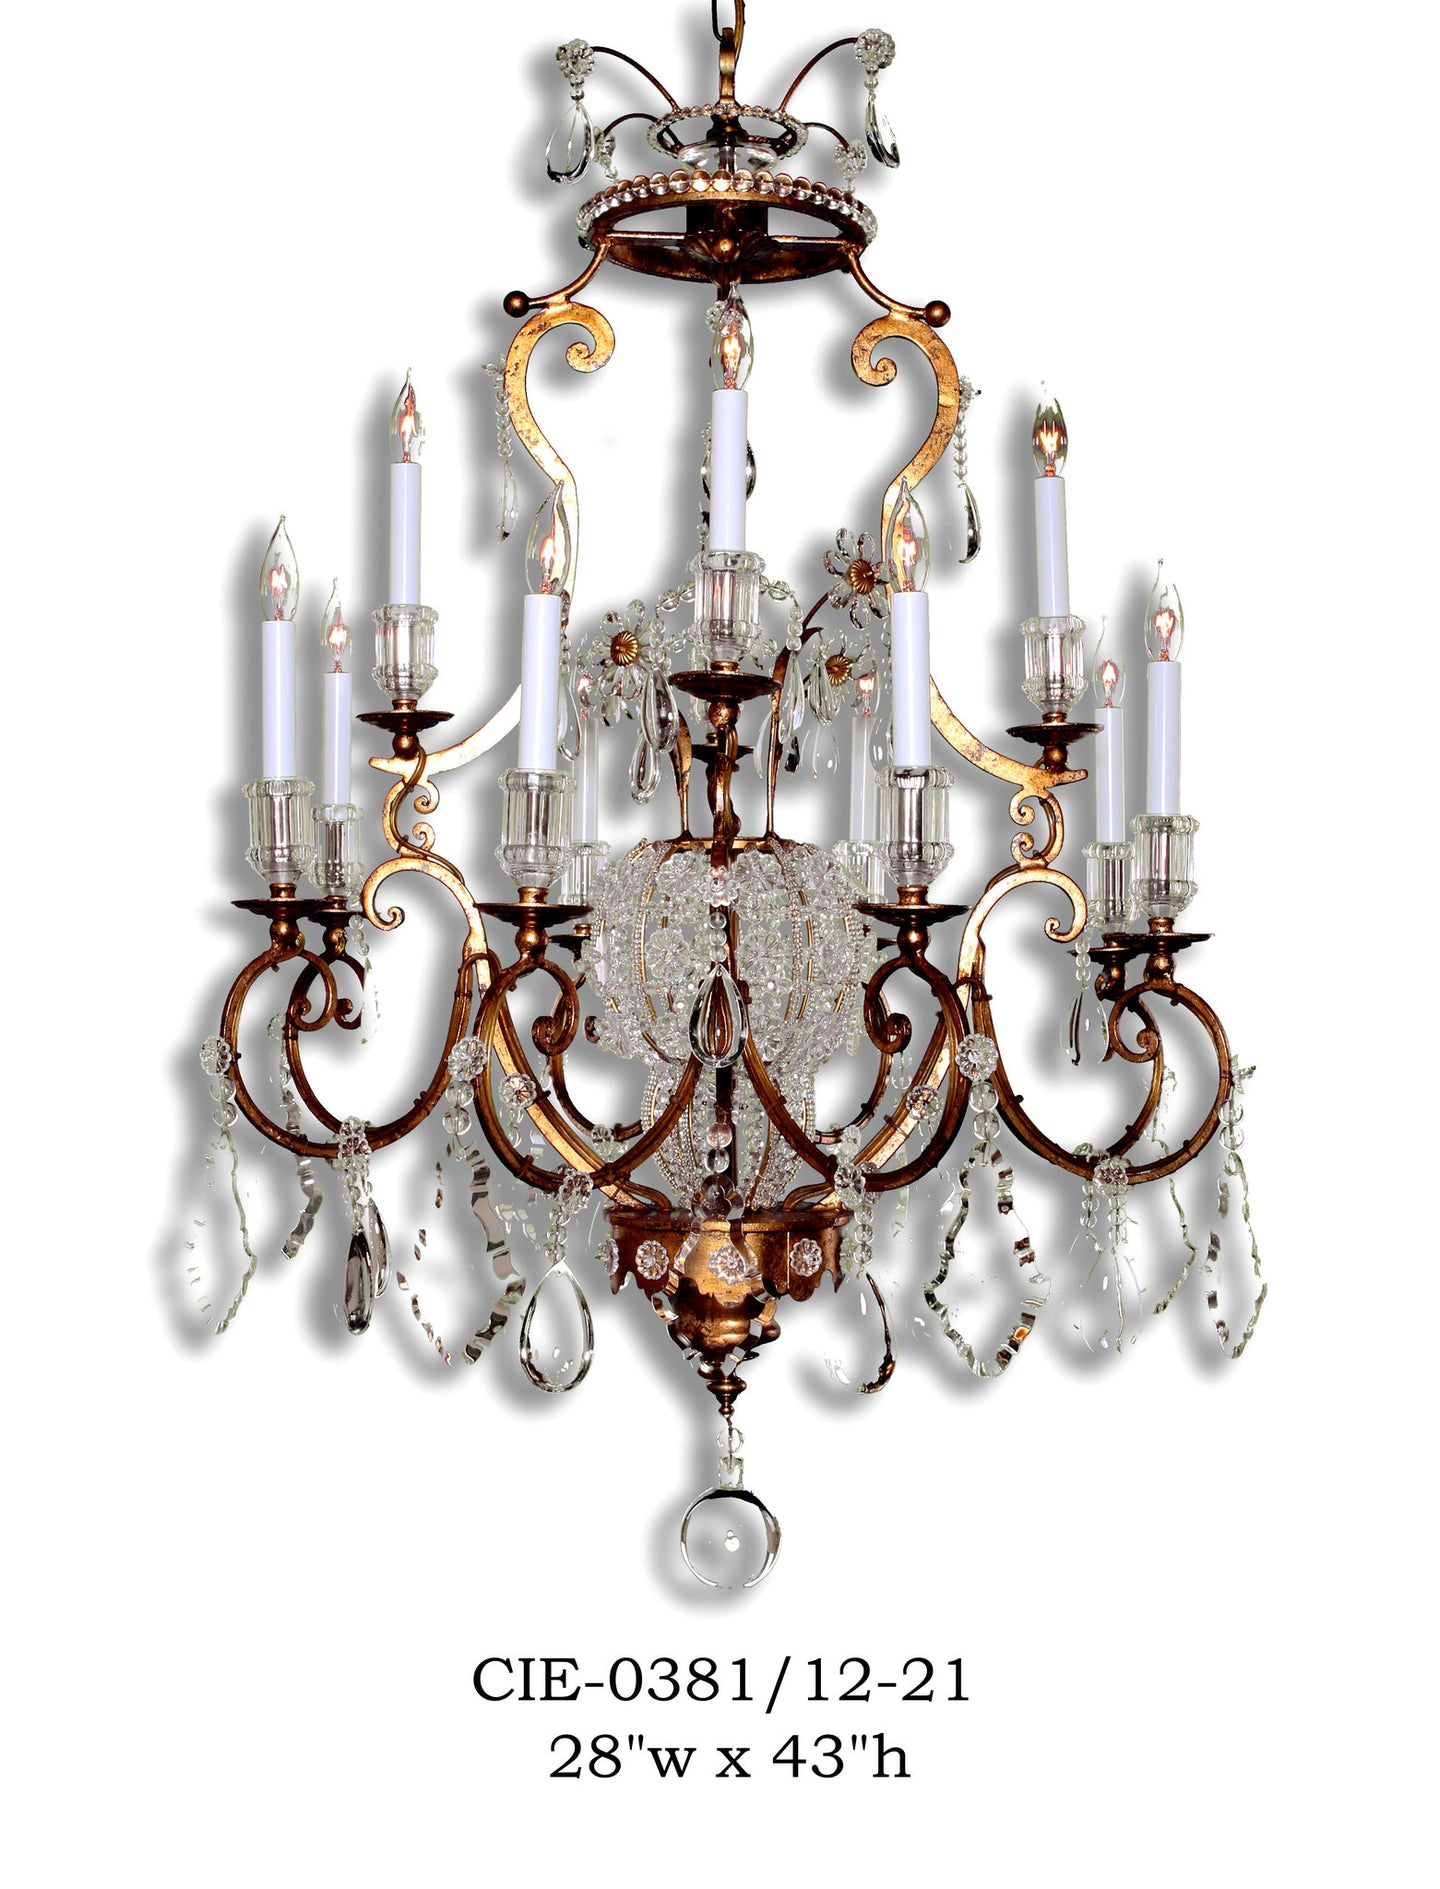 Crystal Chandelier - CIE-0381/12-21Chandelier - Graham's Lighting Memphis, TN